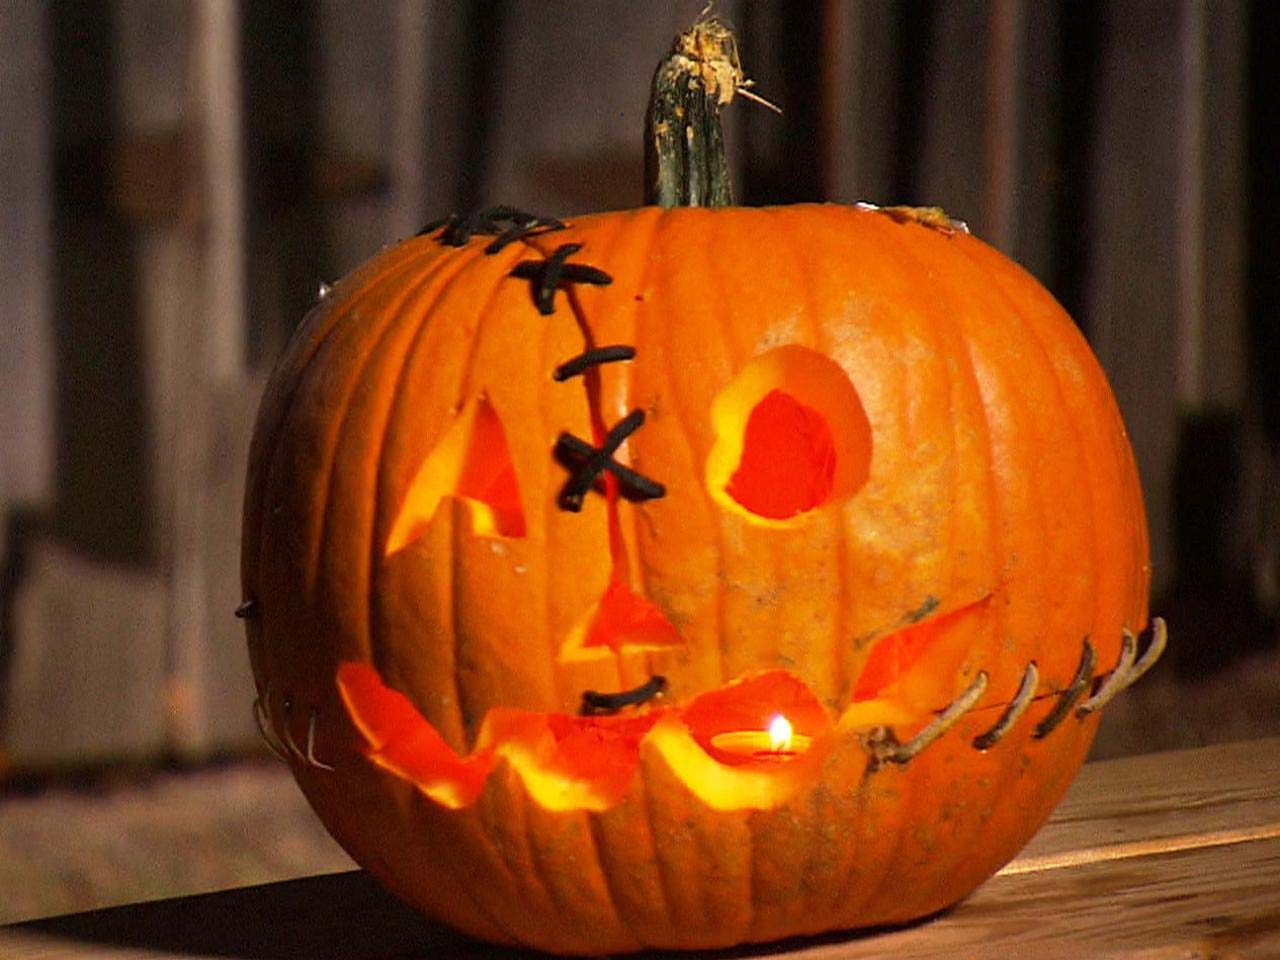 Creative Halloween Pumpkin Carving Ideas-29-1 Kindesign